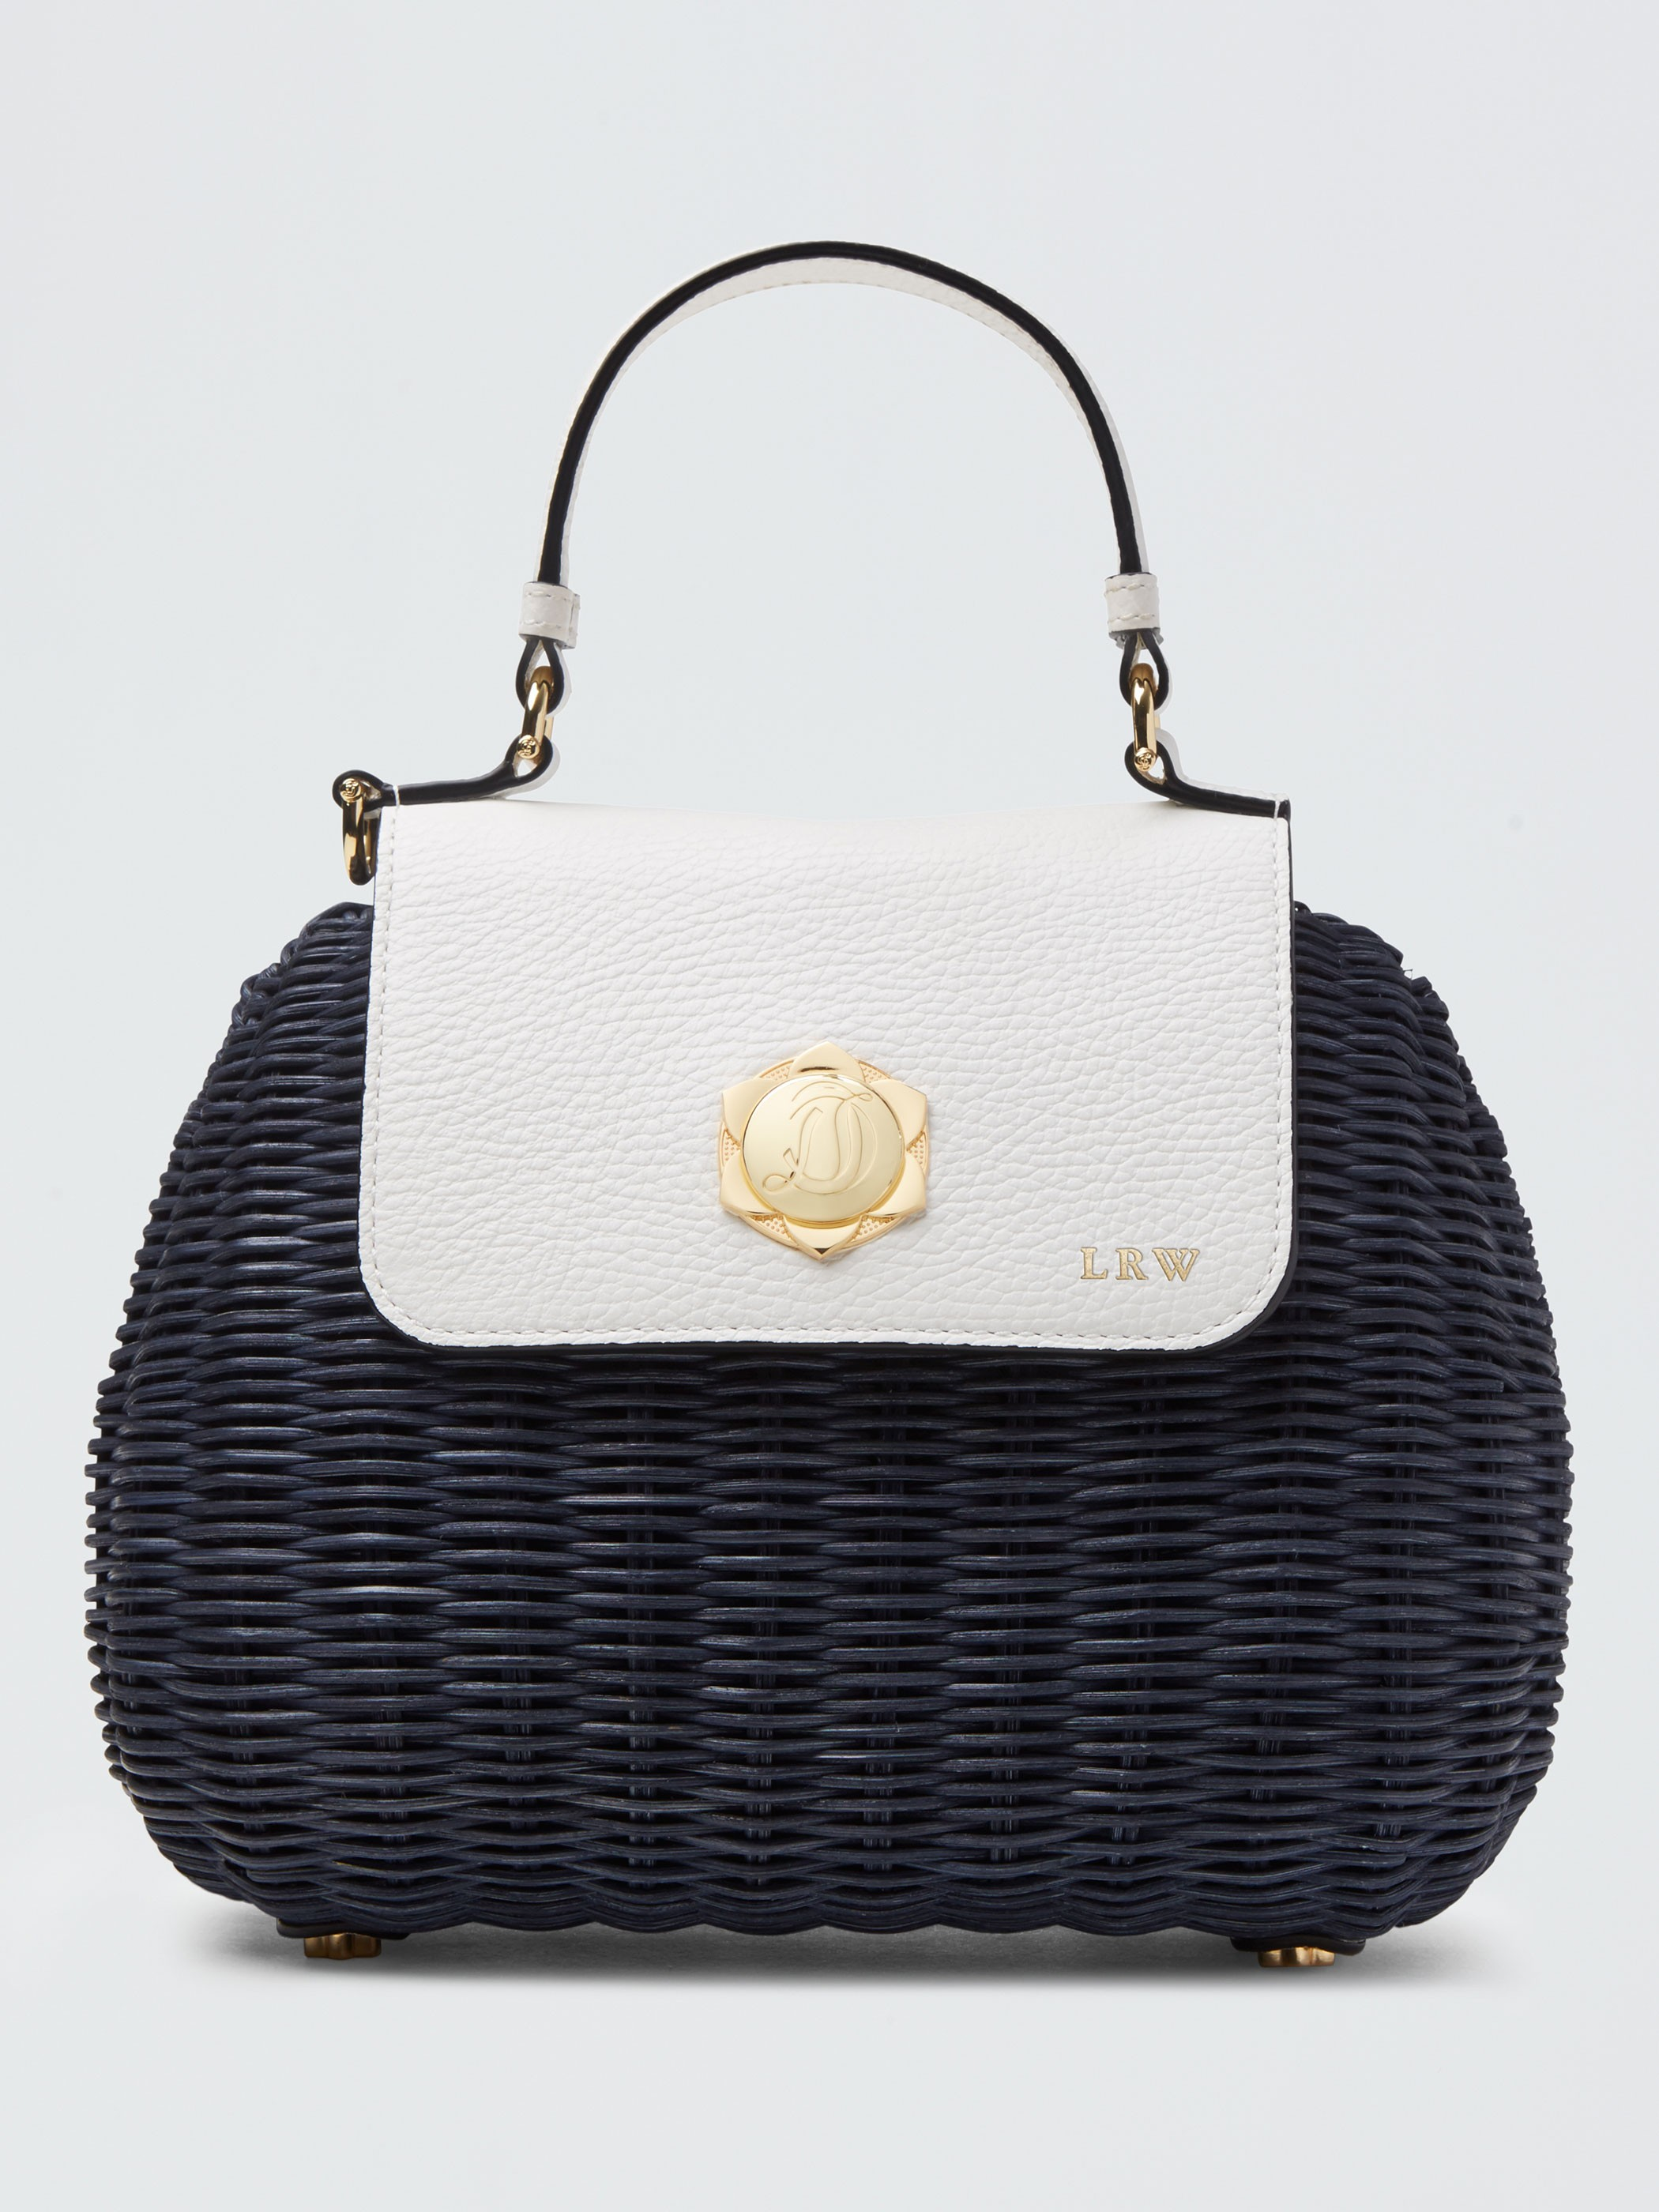 The Overlook Bag in Nashville Navy  - Crafted with beautiful gold magnolia hardware and customizable with a metallic monogram. I ADORE this!